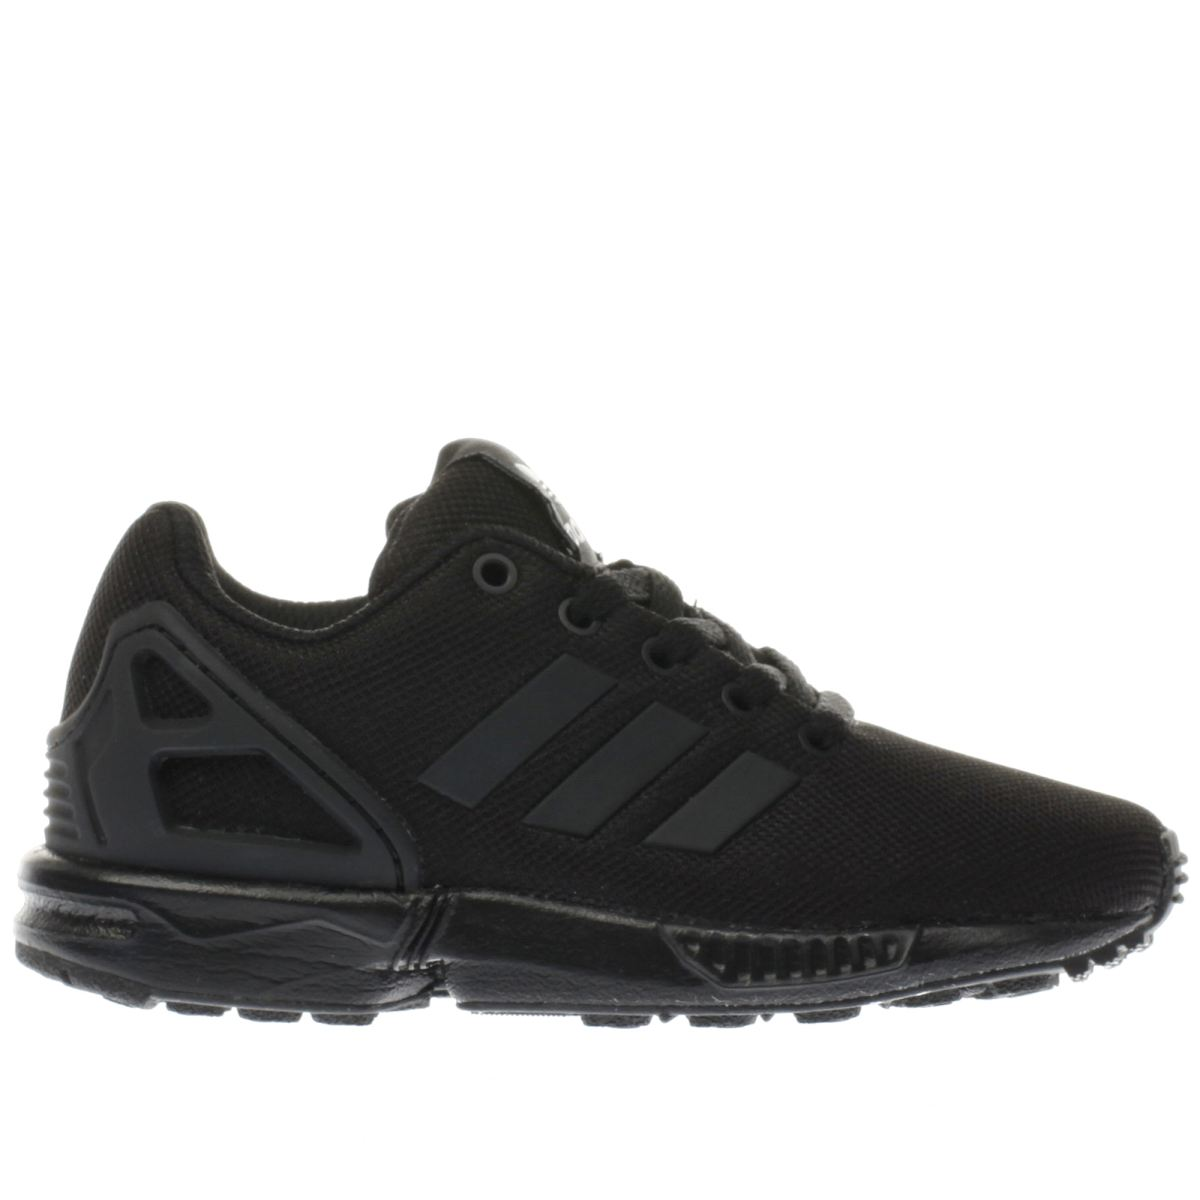 Adidas Zx Flux All Black Womens